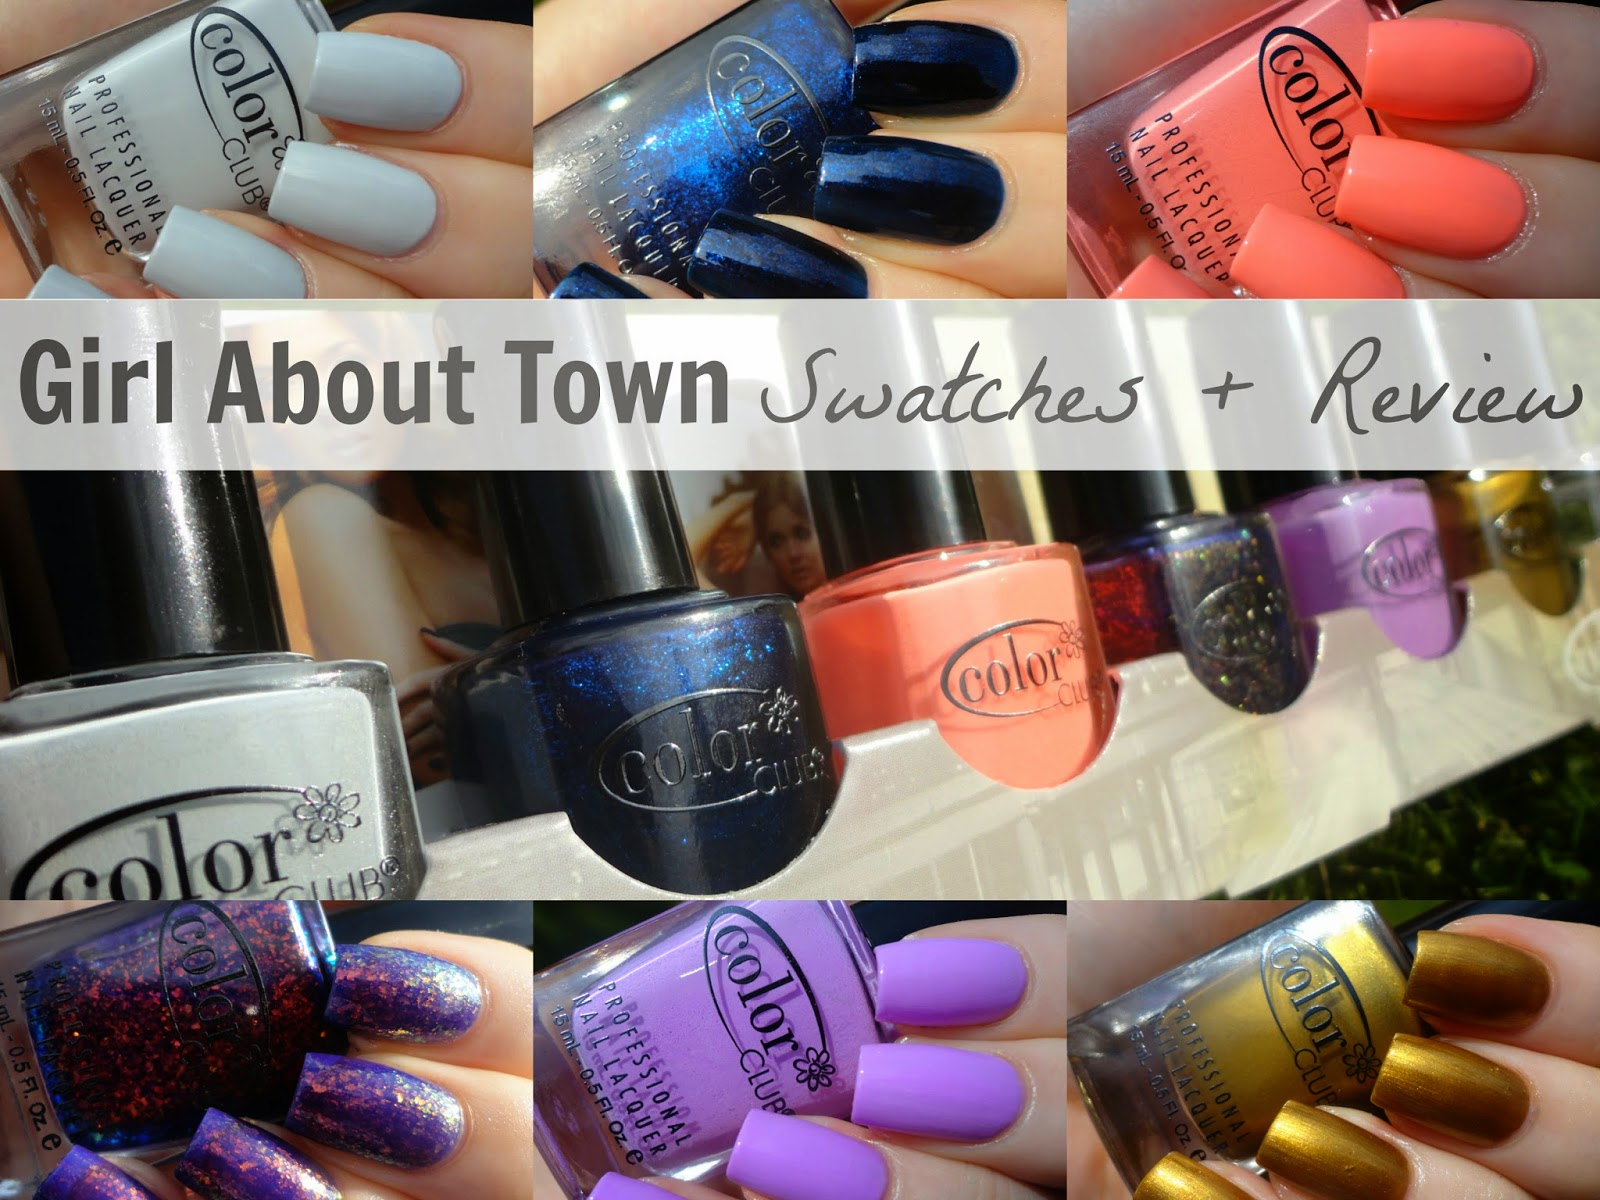 Color Club Girl About Town Nail Polish Collection Fall Autumn 2013 Swatches and Review